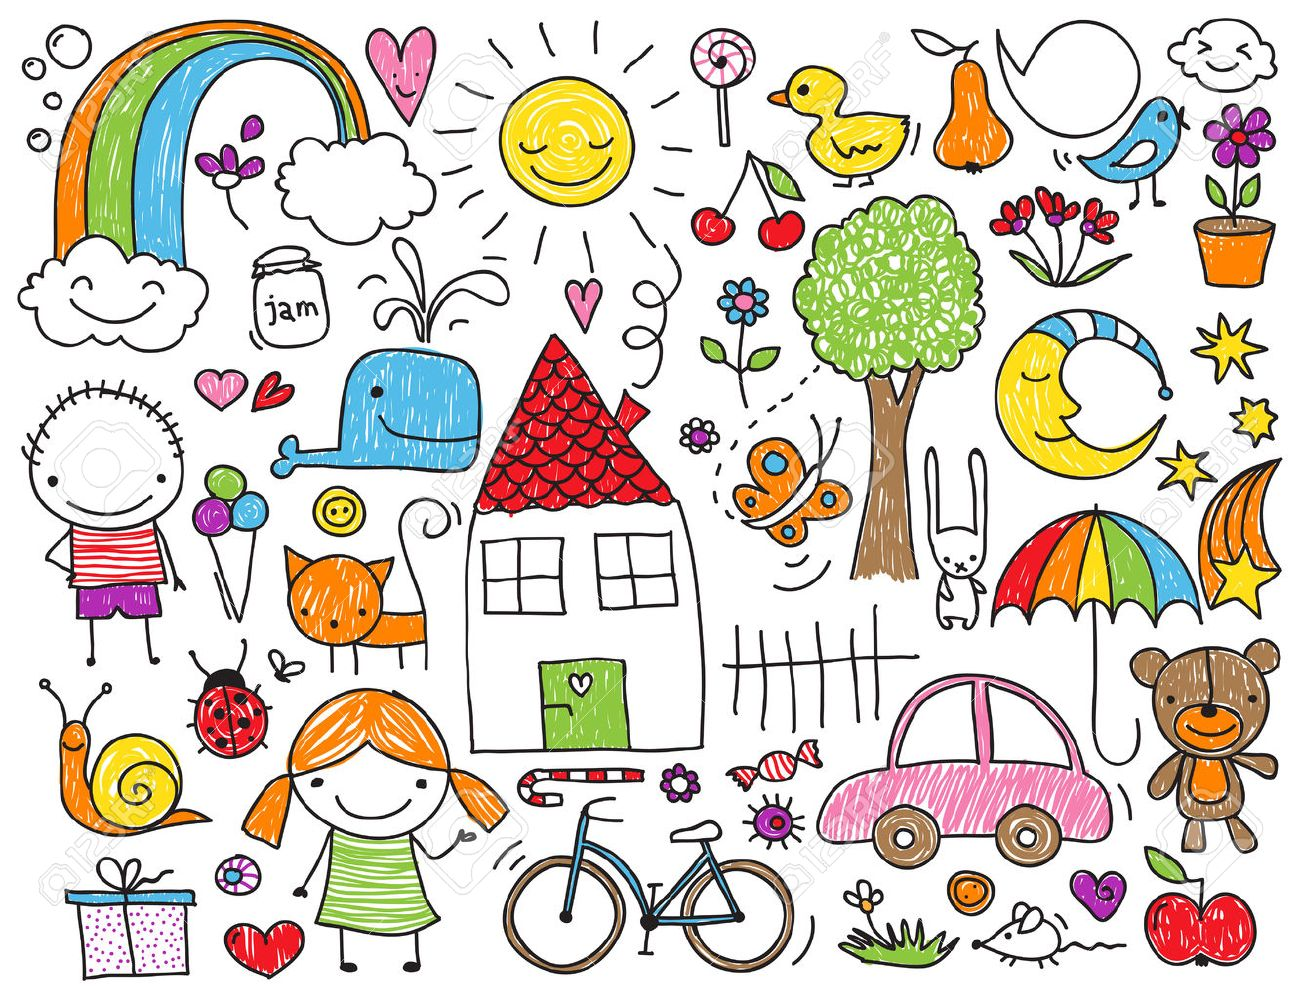 Collection of cute children's drawings of kids, animals, nature, objects - 29462393